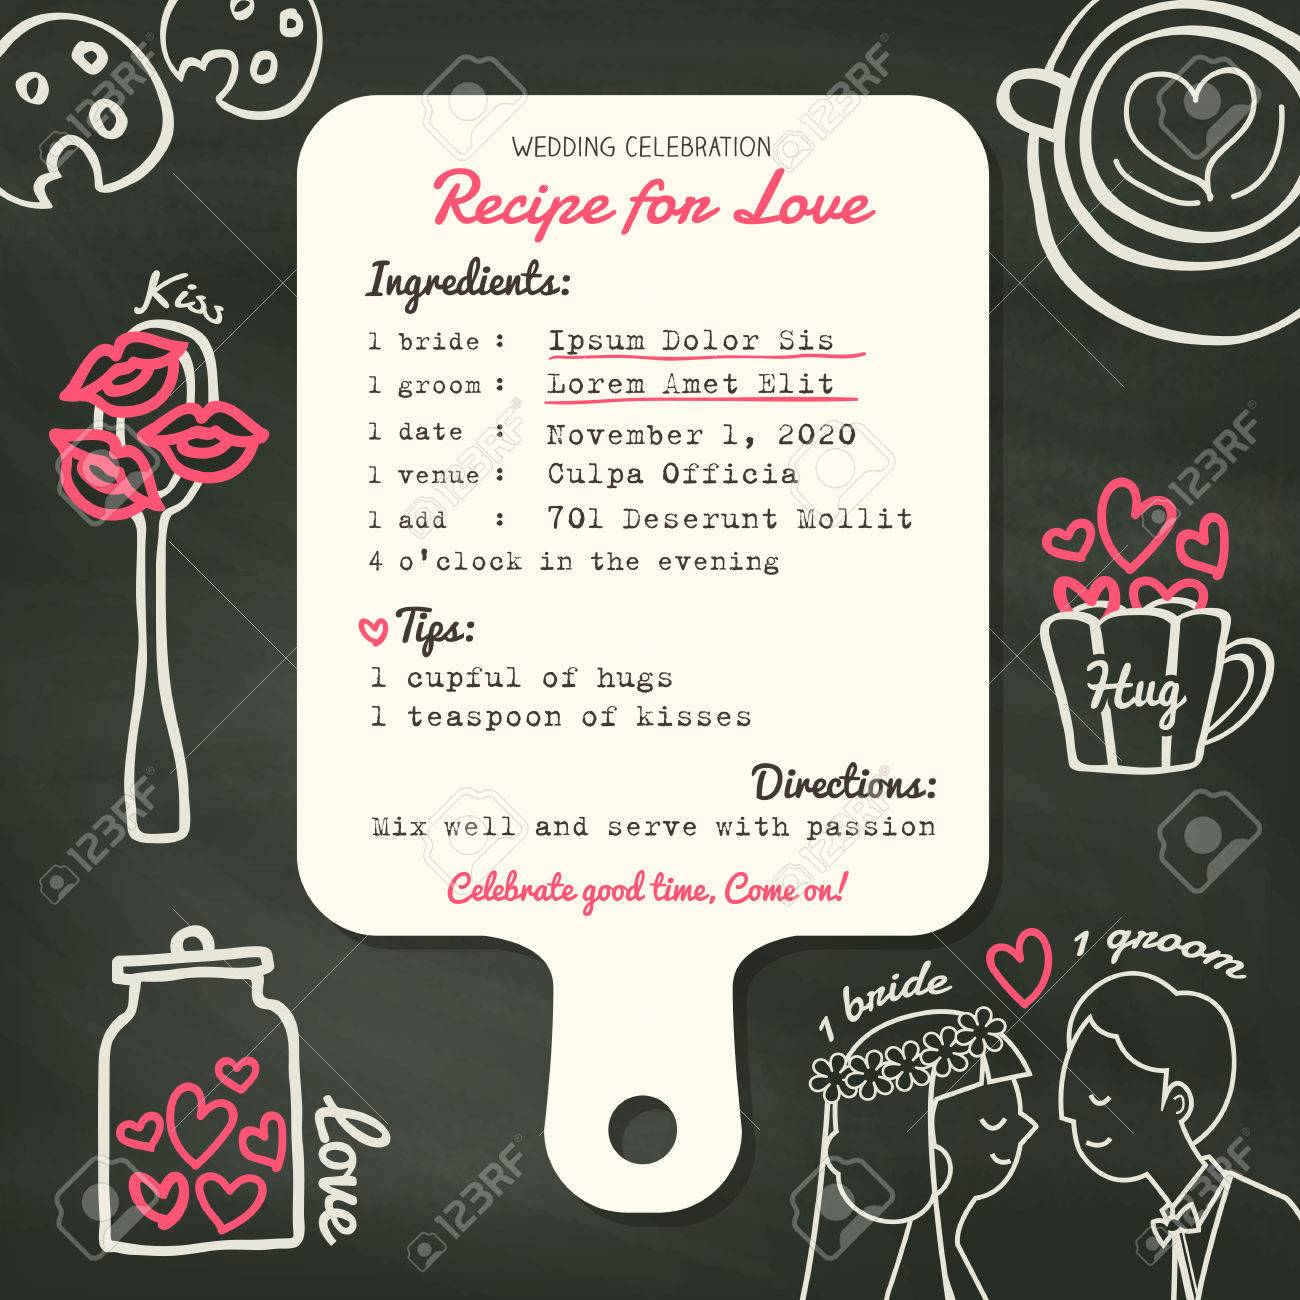 Recipe card creative wedding invitation design template with cooking banco de imagens recipe card creative wedding invitation design template with cooking concept stopboris Gallery